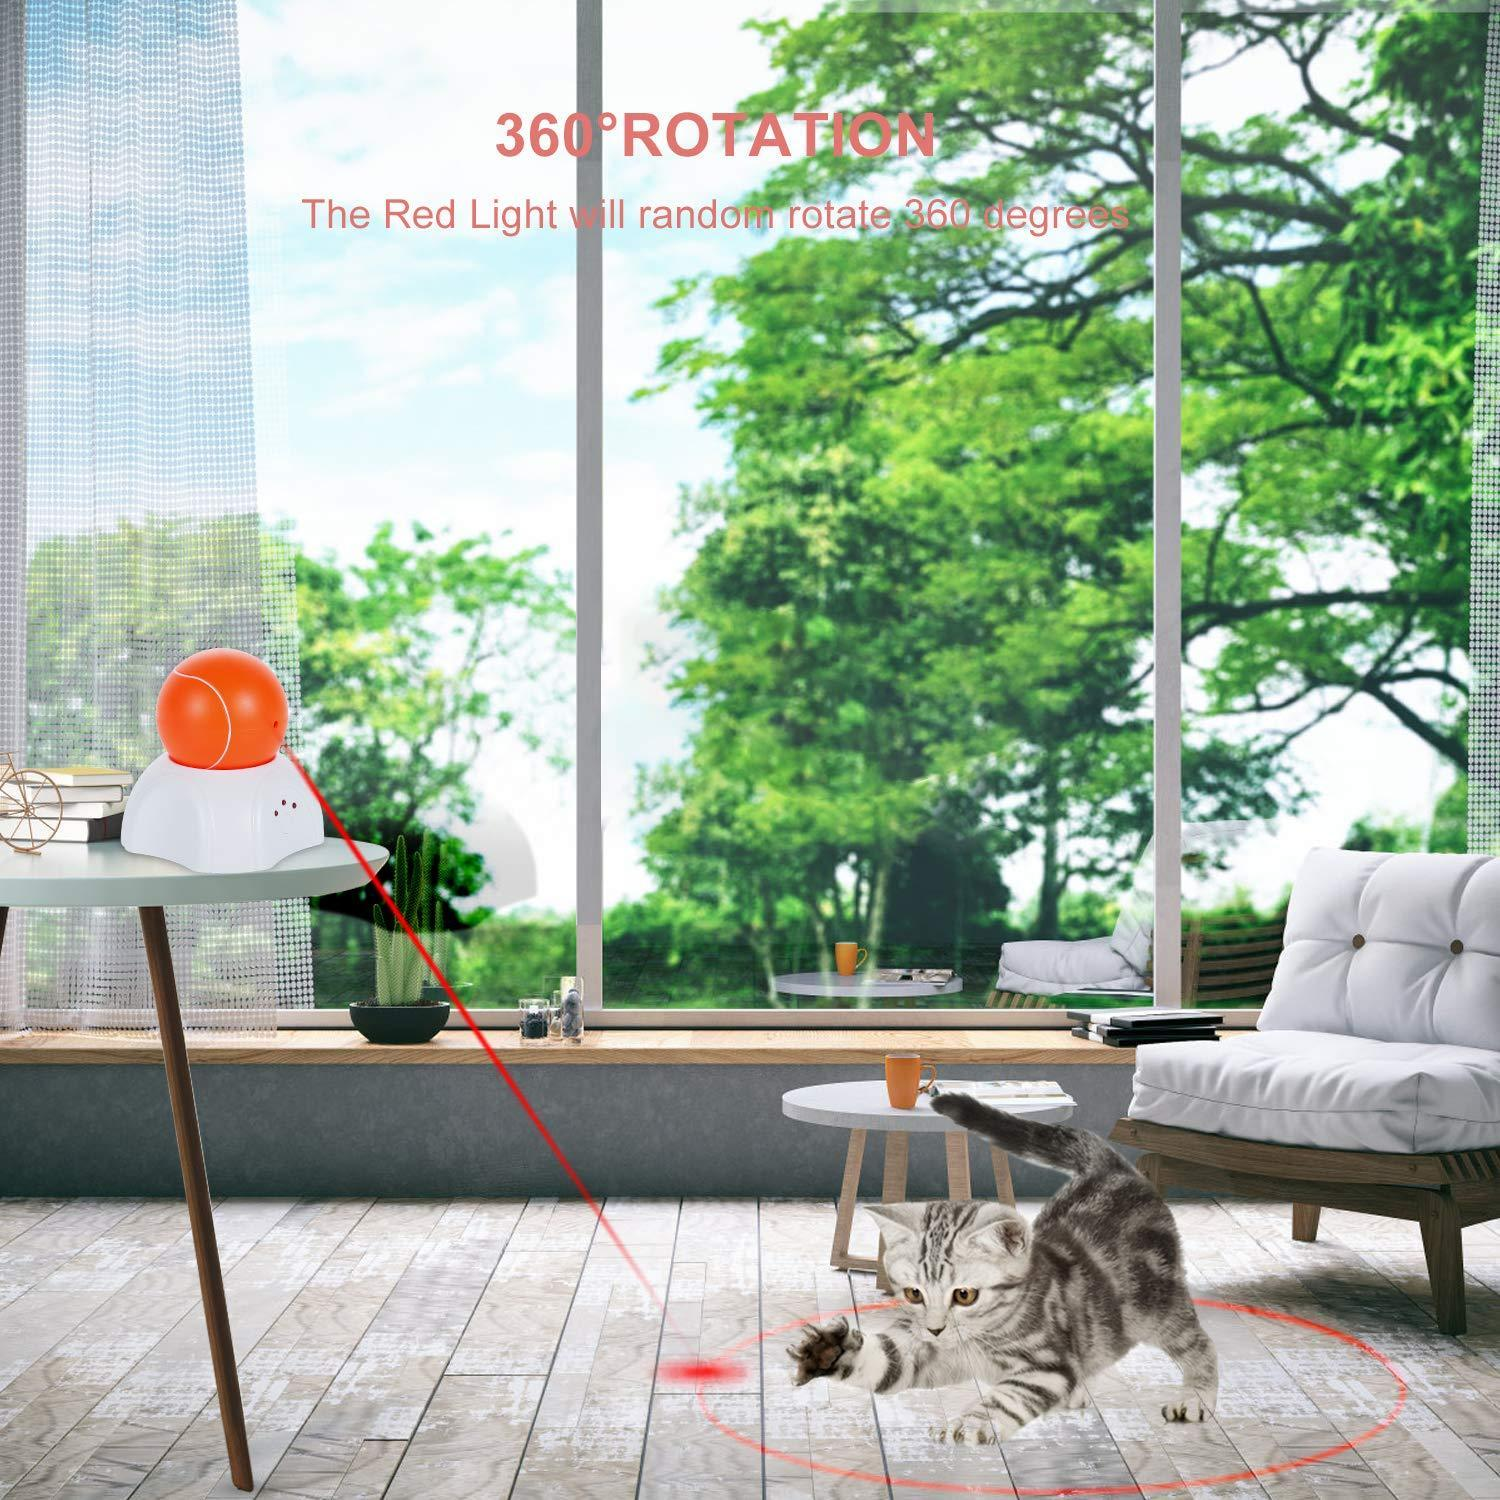 Laser LED Cat Toy Electric Ball